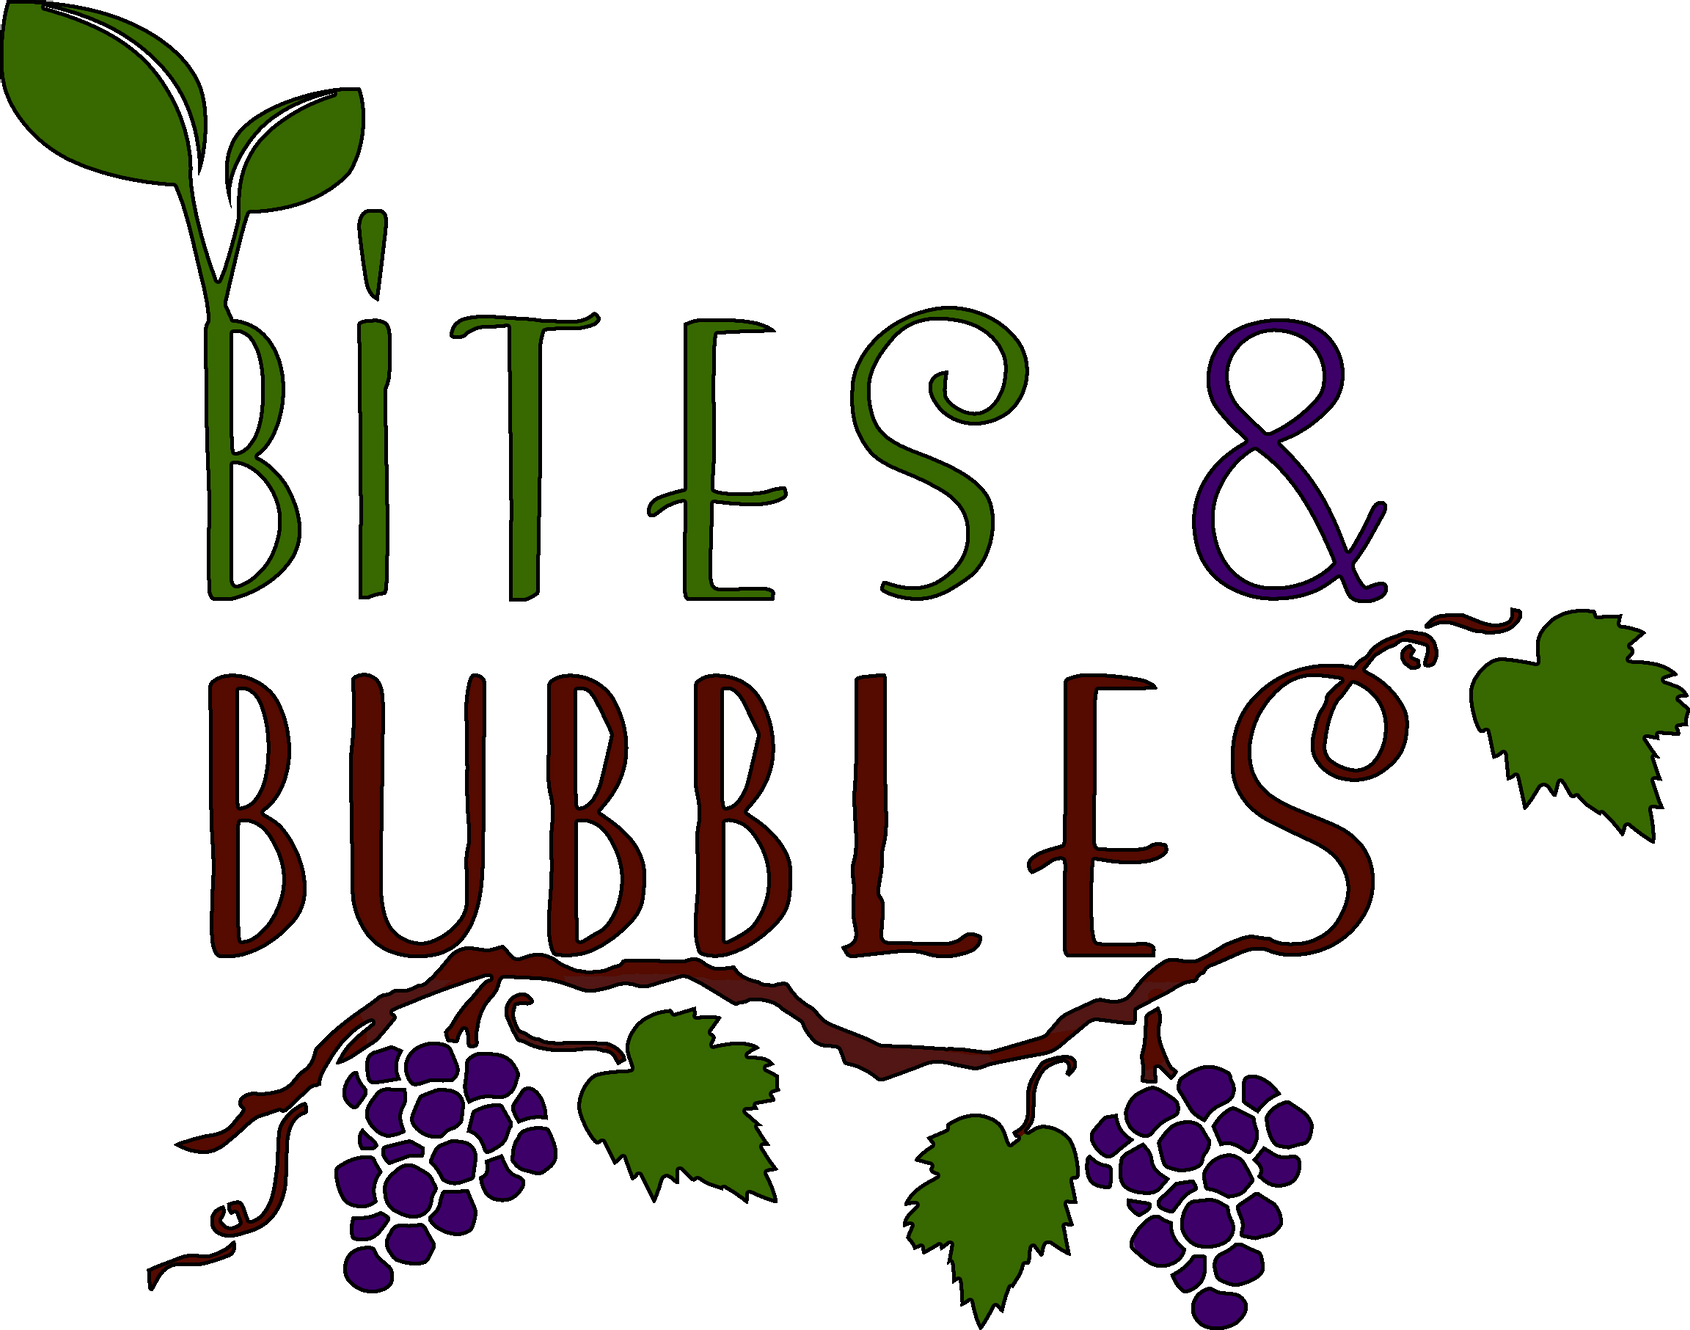 Bites and Bubbles